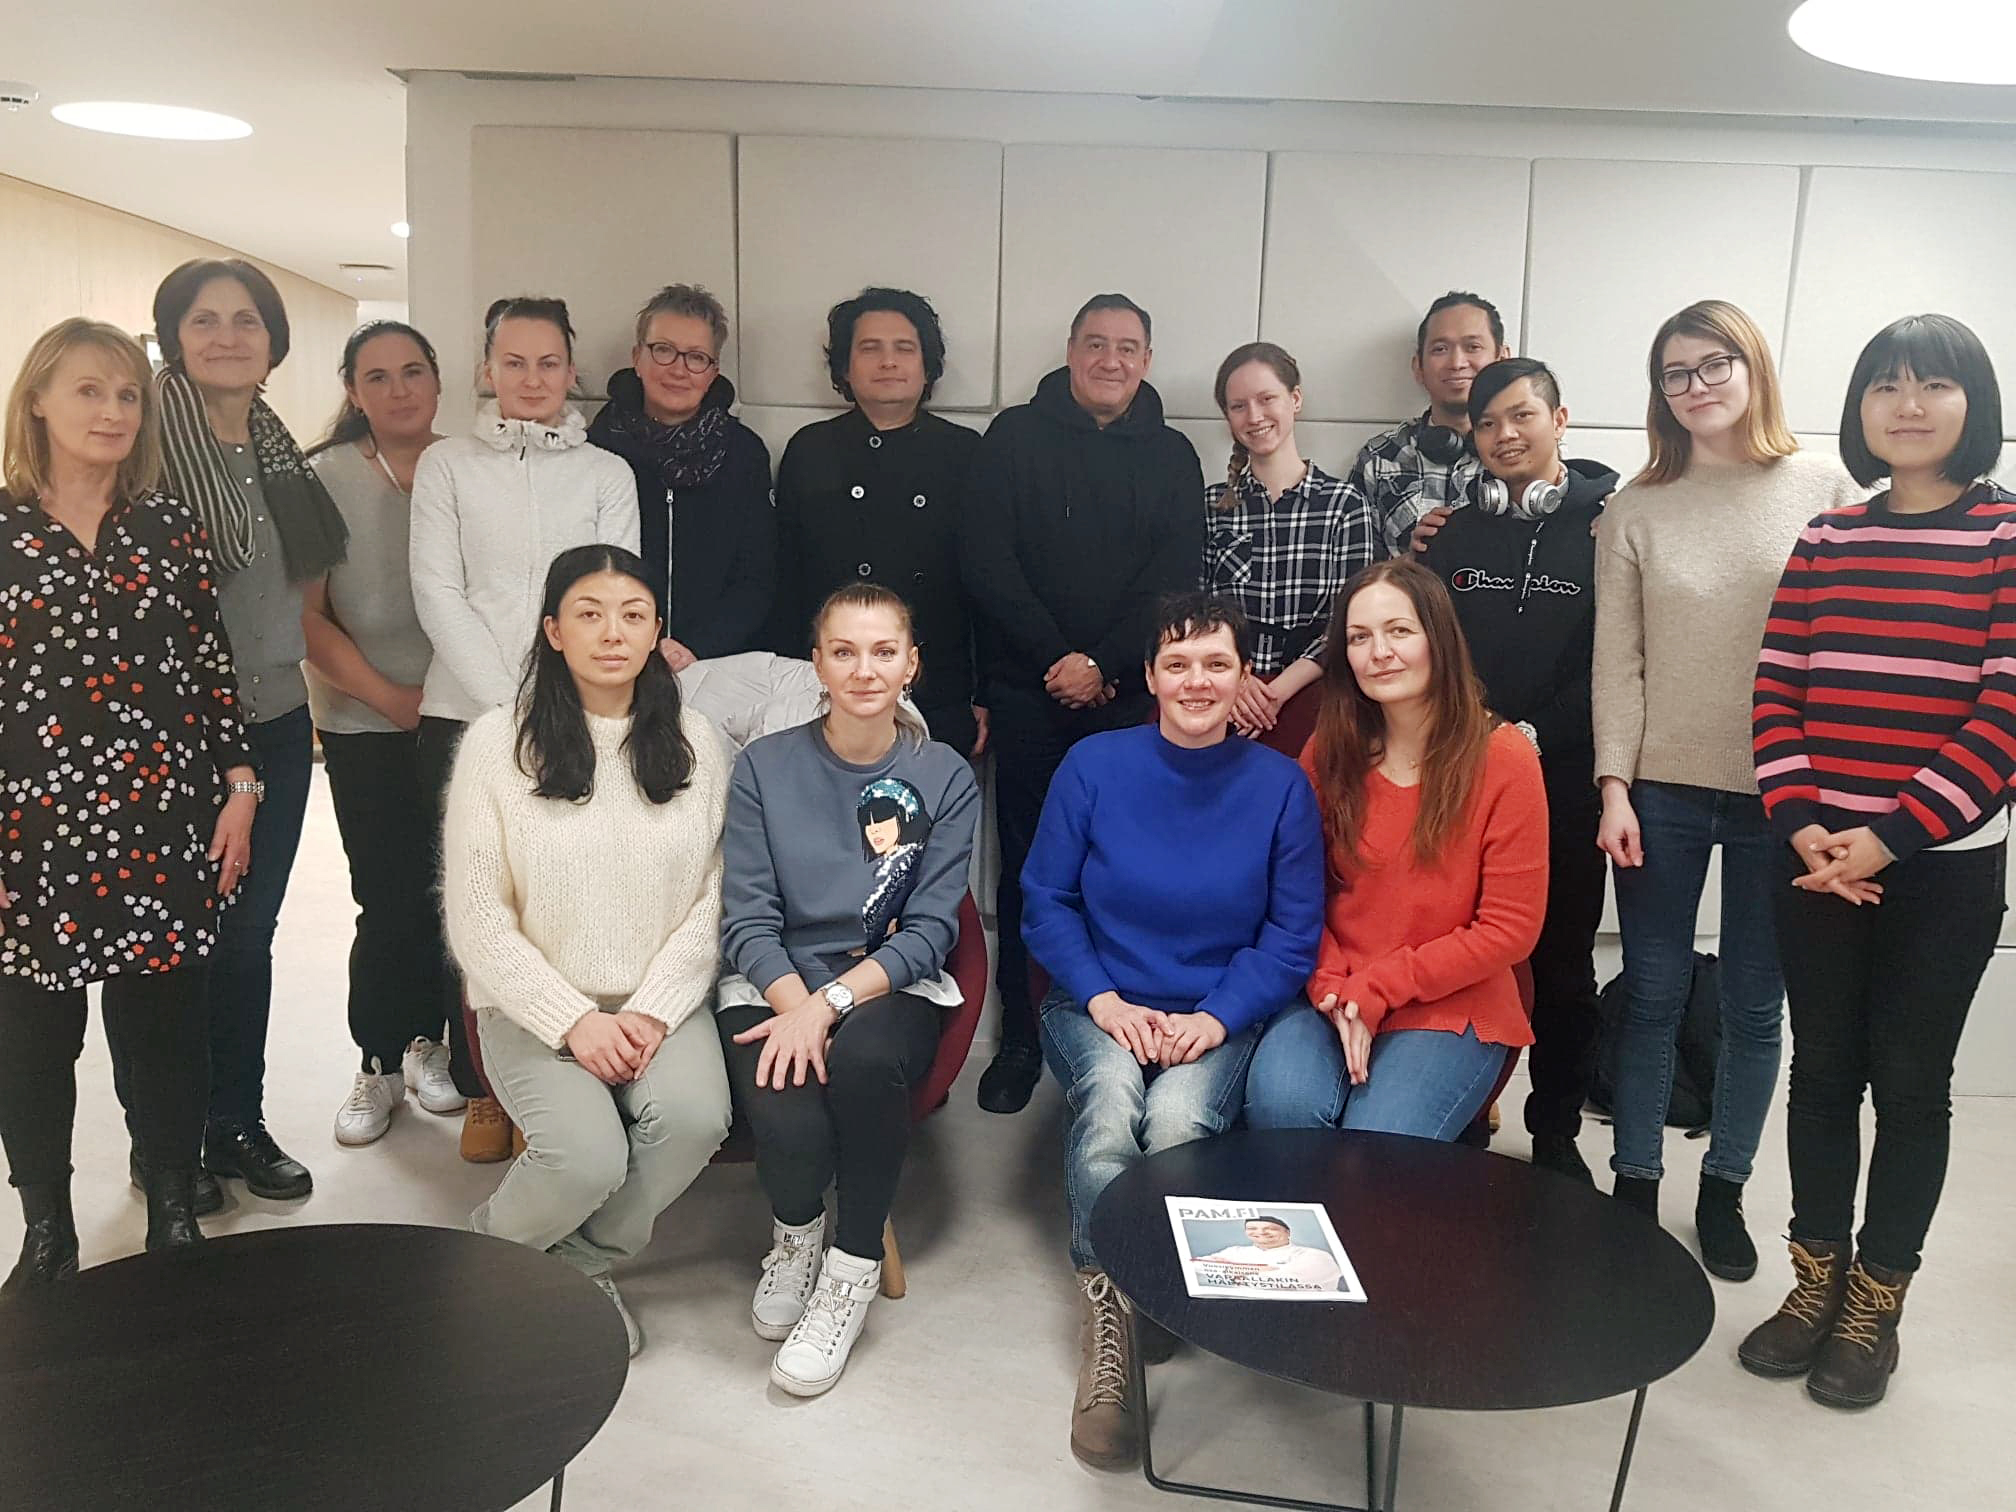 Students attending the course during the fall received their diplomas from teacher Outi Rummukainen (left) in December.